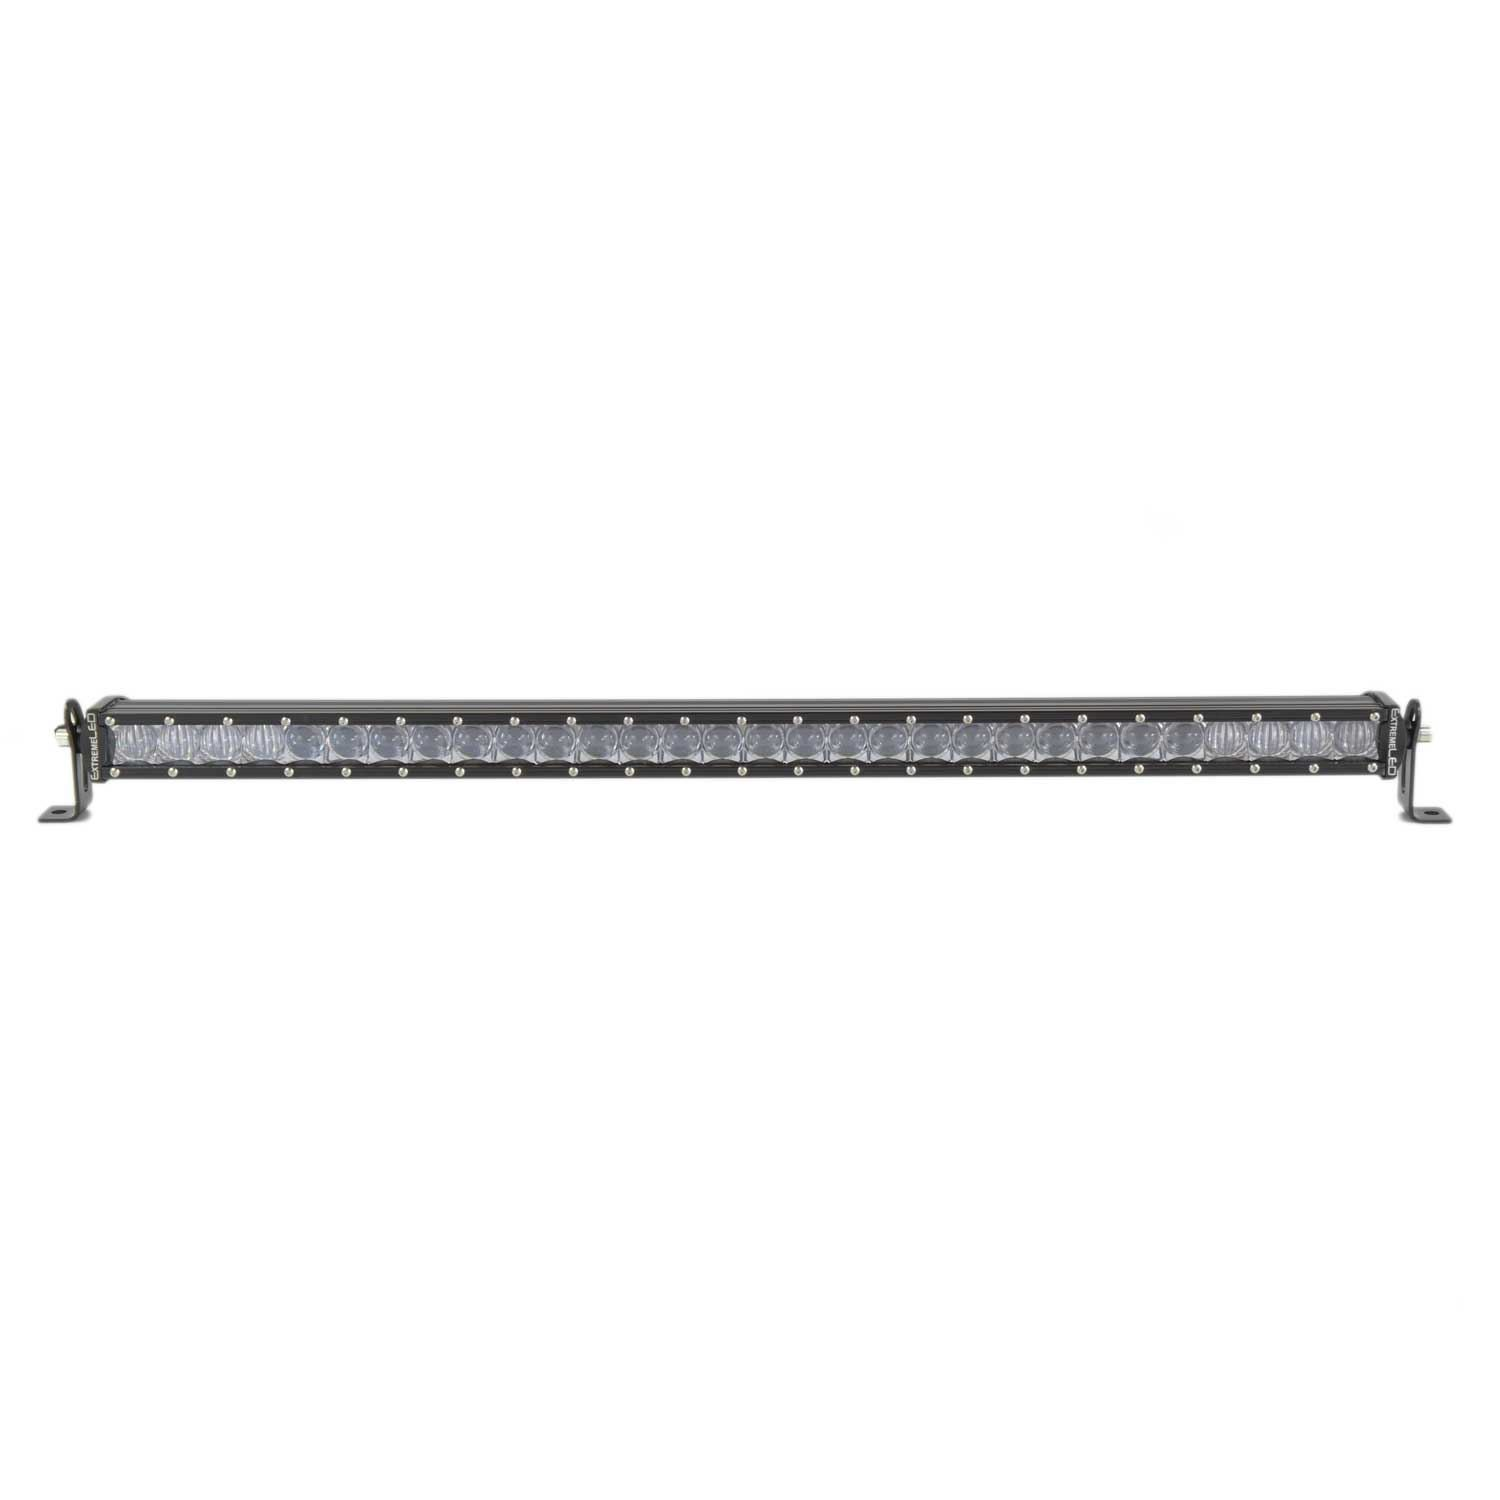 "Extreme 5D 30"" Single Row LED Light Bar"